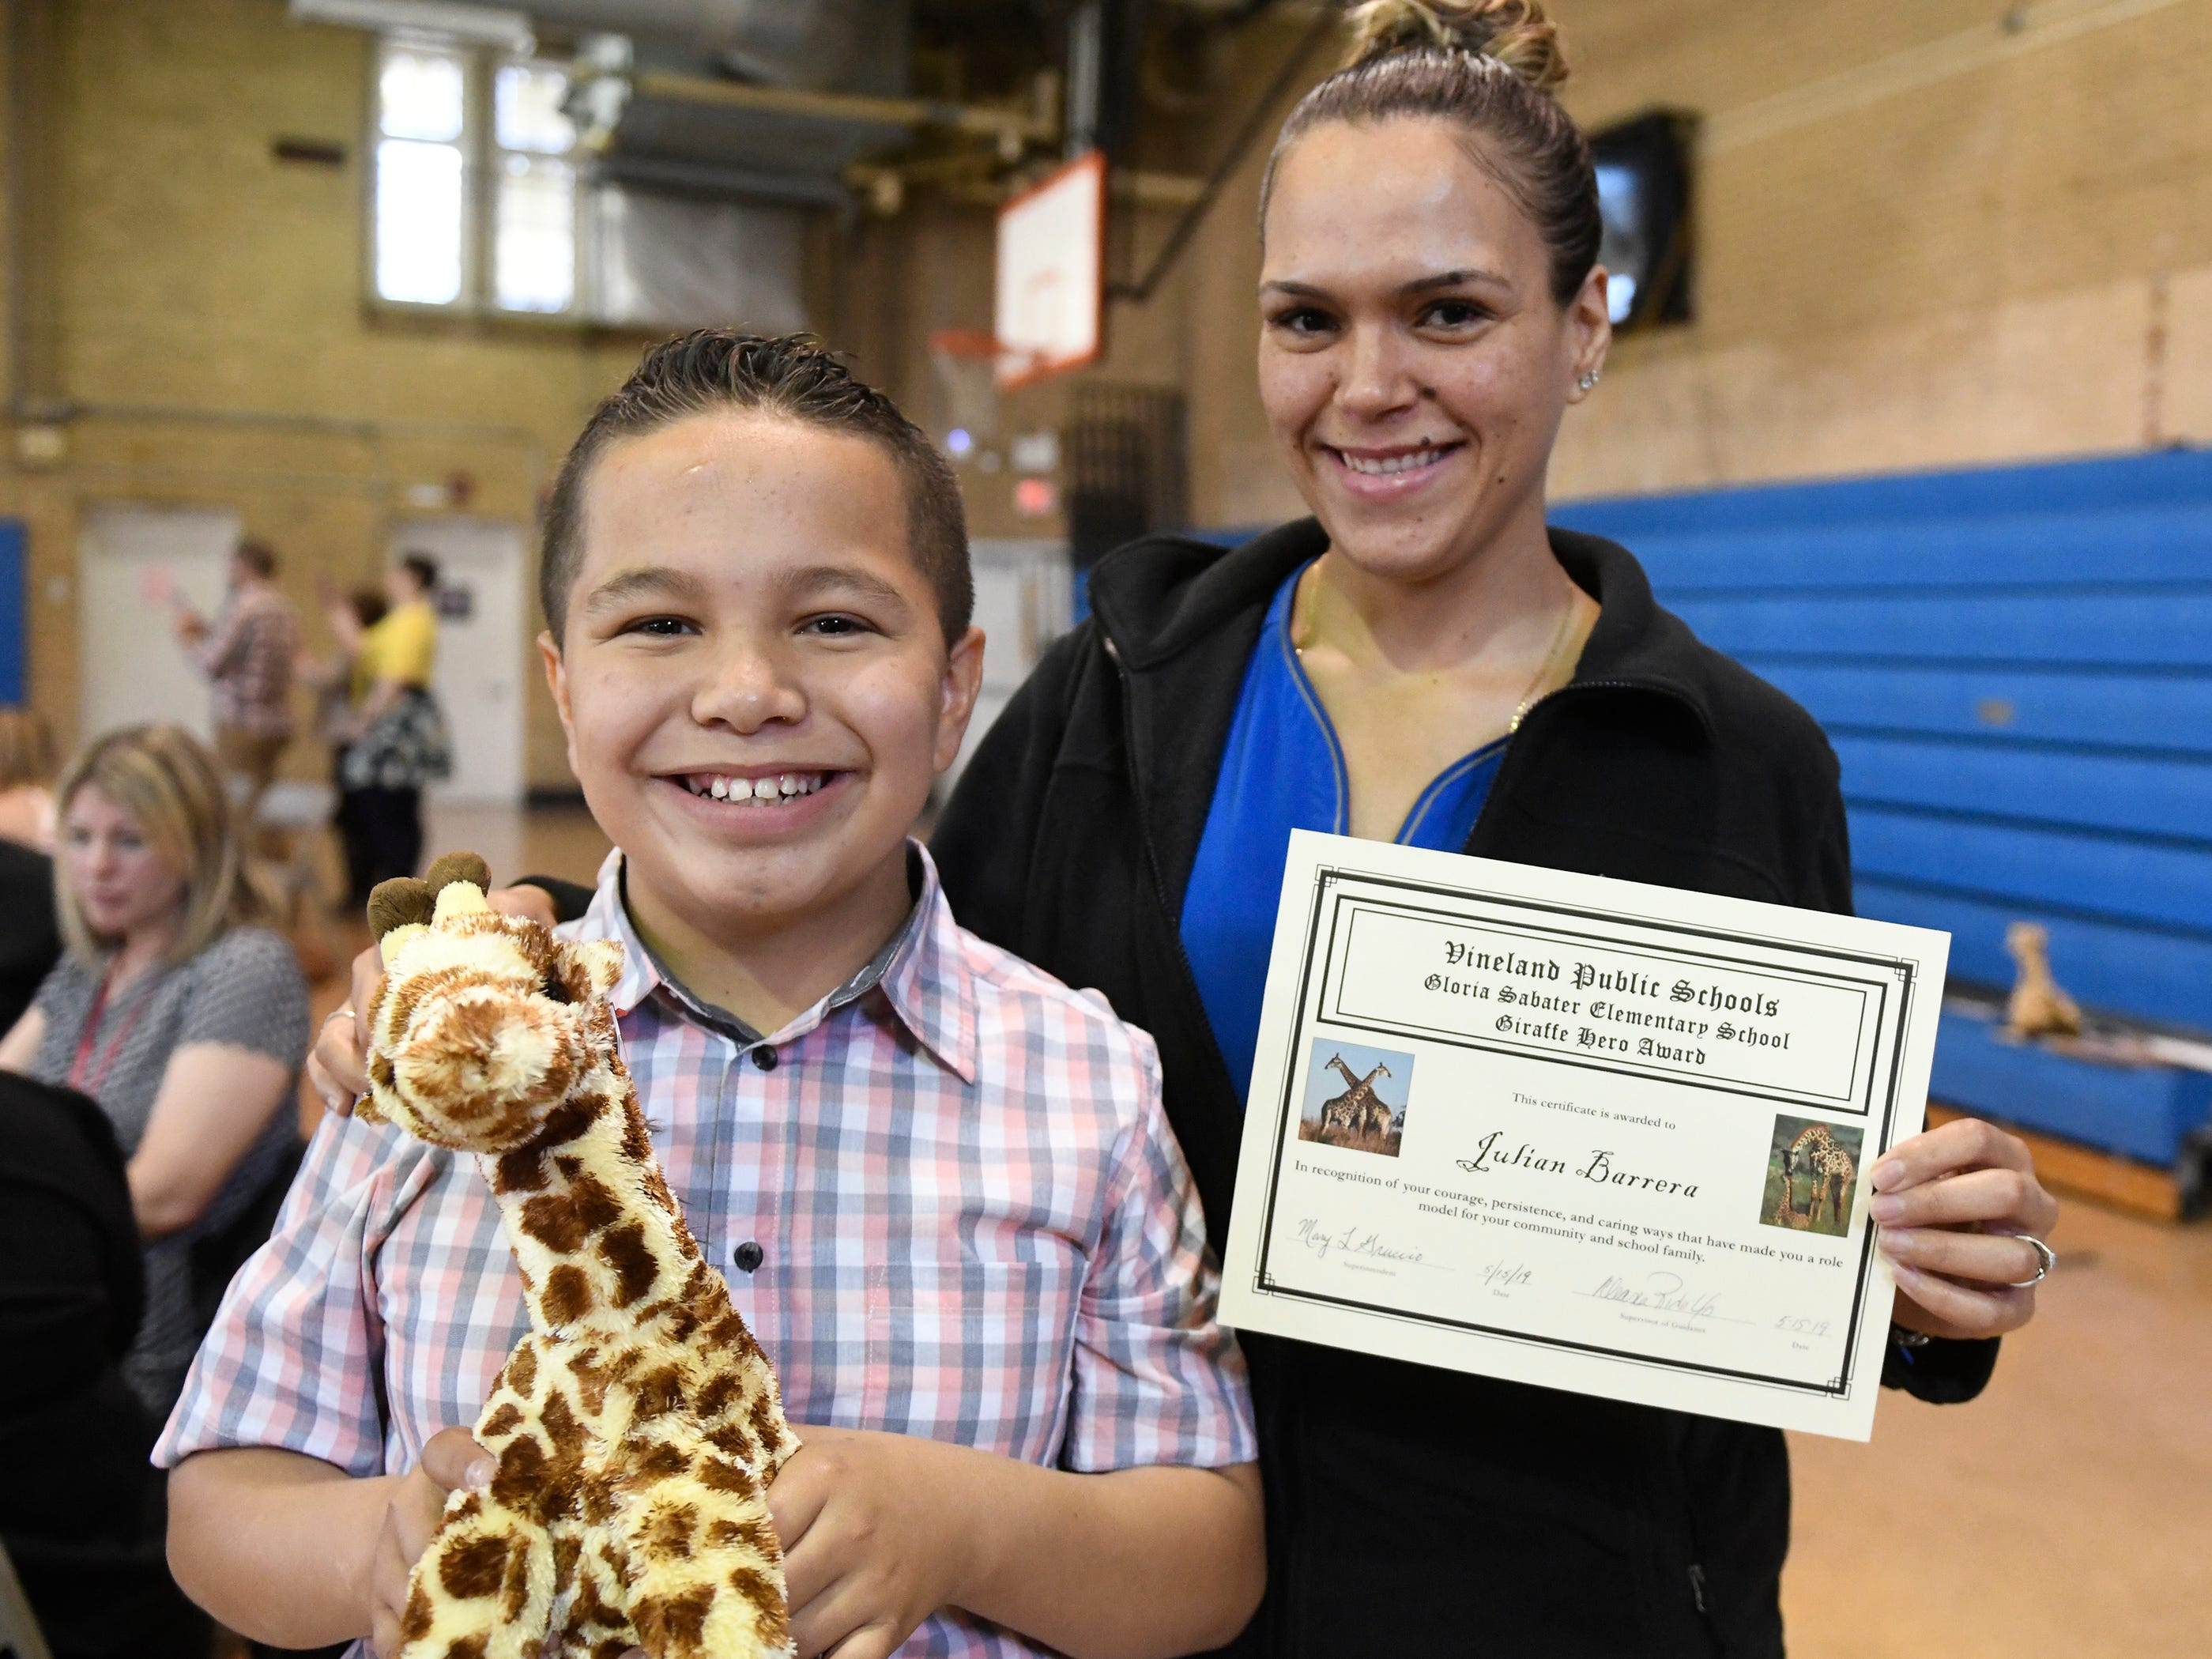 Sabater Elementary School student Julian Barrera was presented with a Giraffe Hero Award during a special ceremony on Wednesday, May 15, 2019.